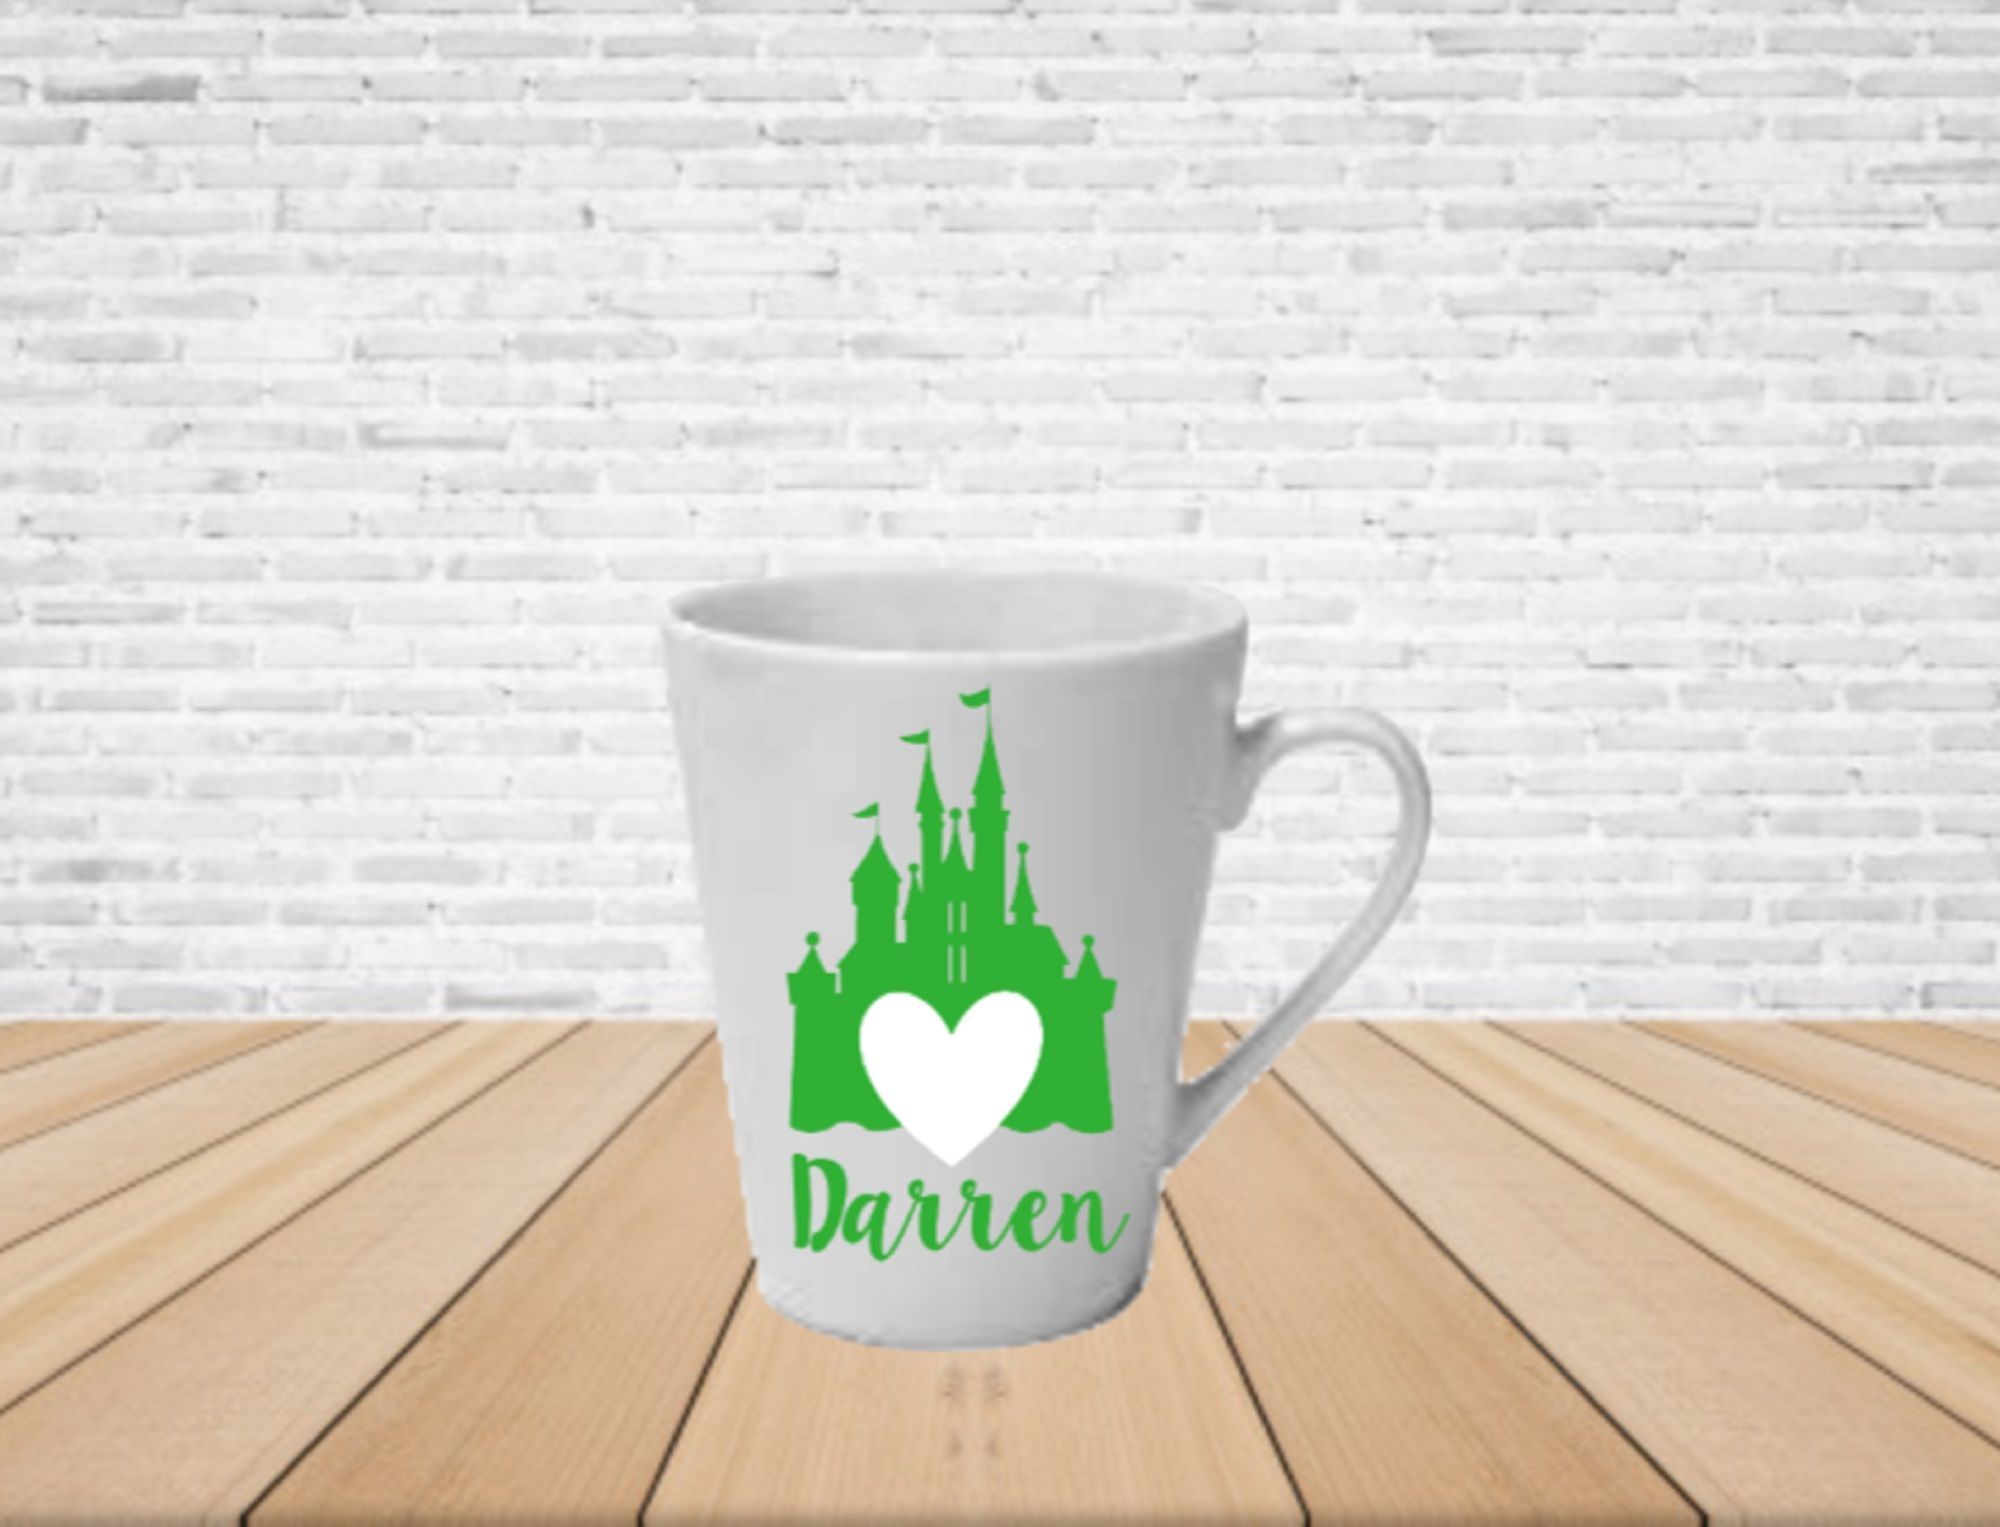 Personalized Disney Coffee Mug | Personalized Disney Cup | Personalized Disney Gift | Disney Coffee Cup | Disney Gift | Disney Mug with Name #disneycups $11.99   FREE SHIPPING #disneycoffeemugs